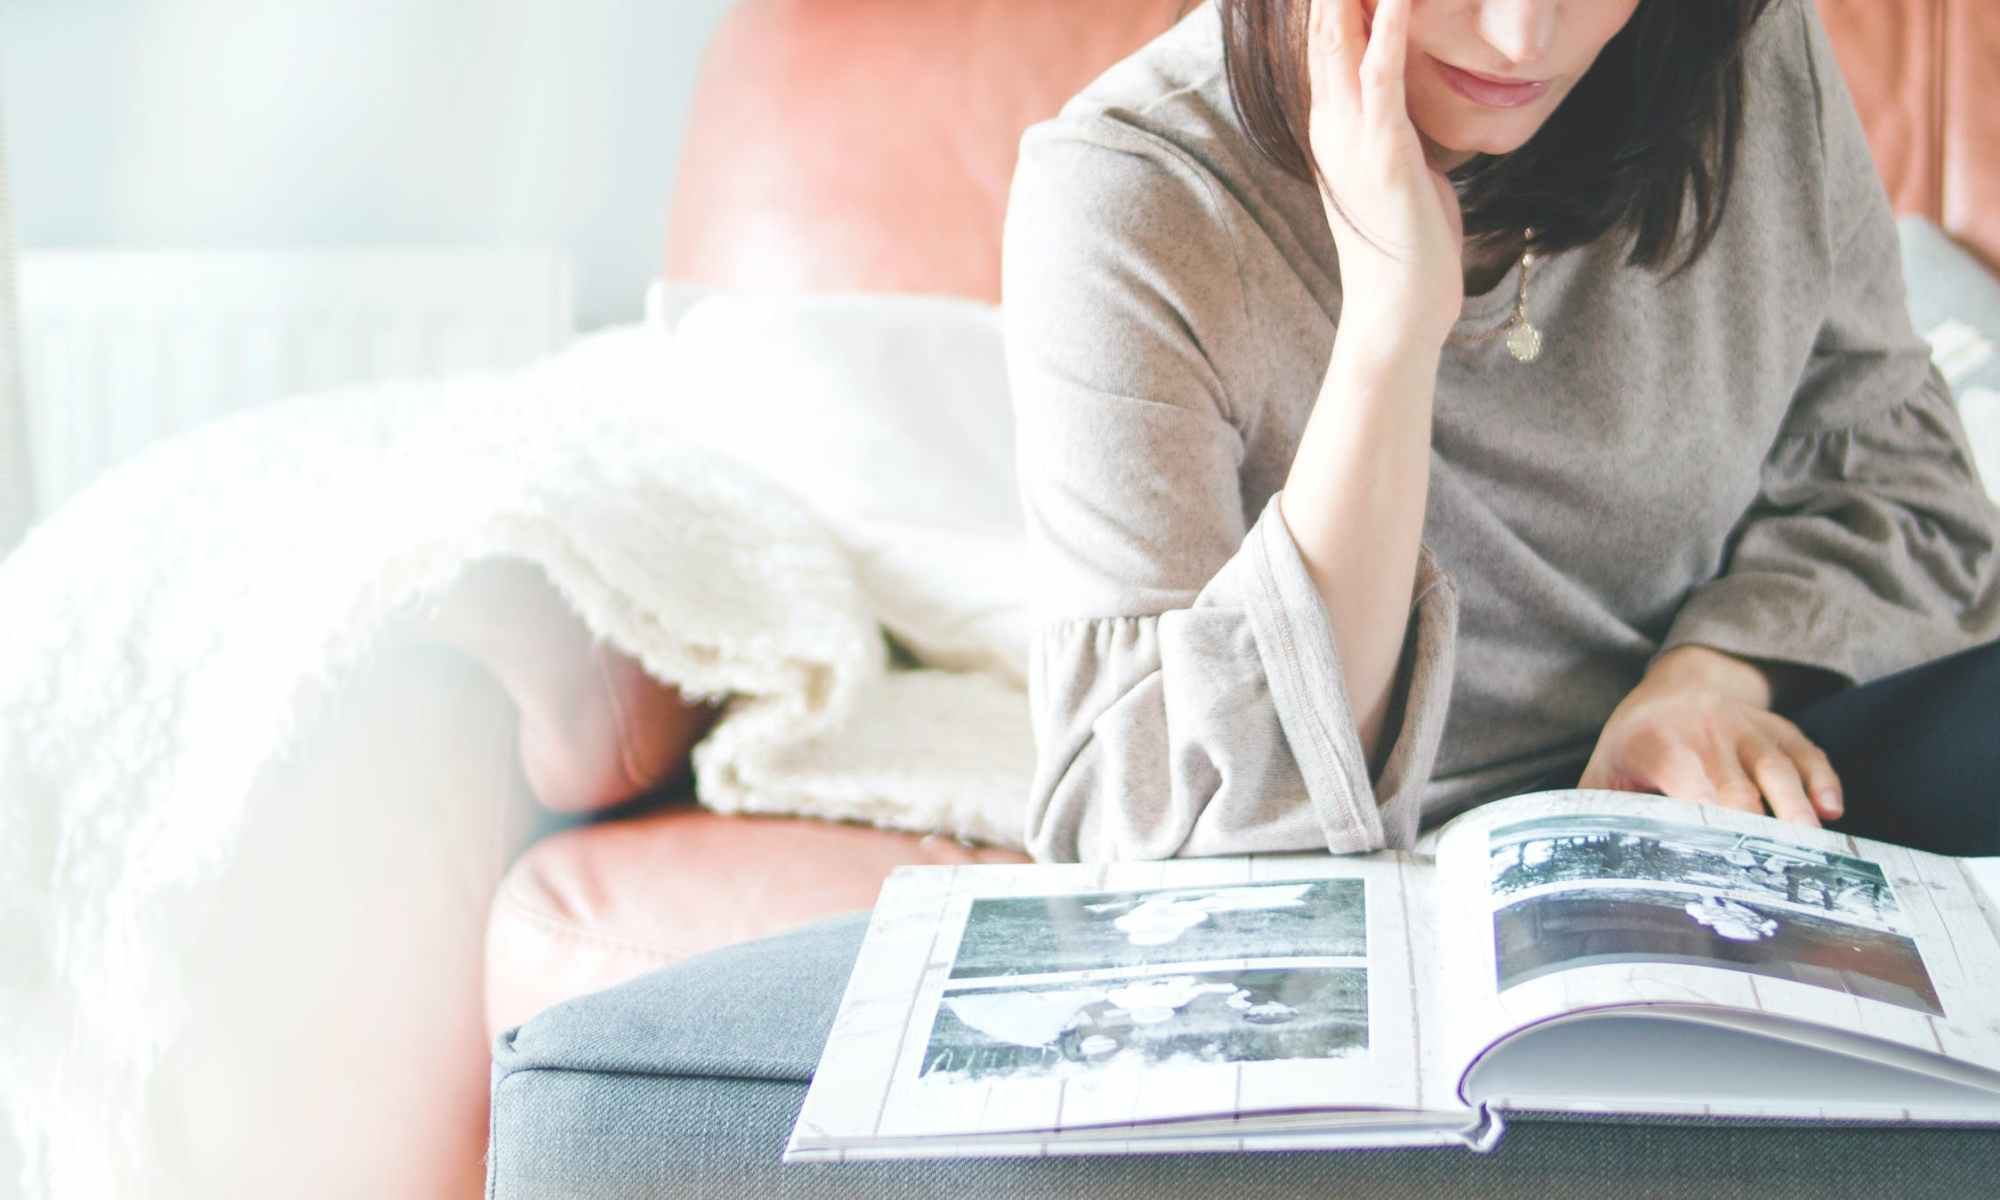 White woman sitting on pink couch looking at photo album